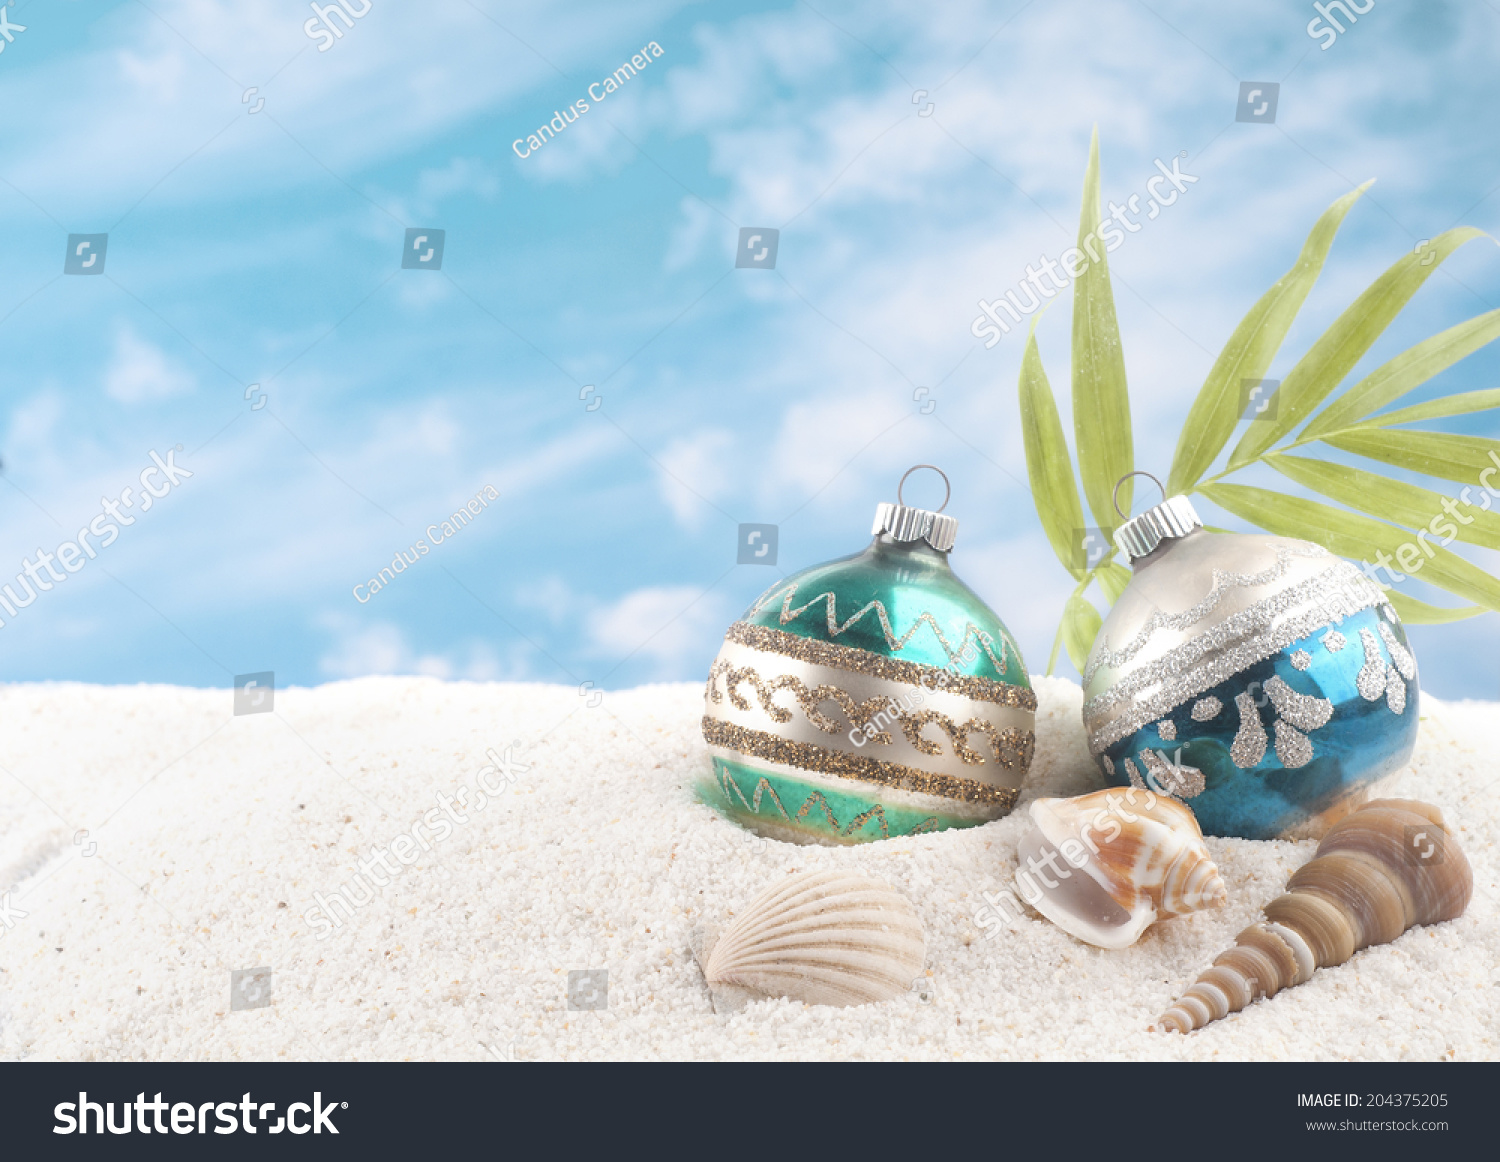 Christmas beach ornaments - Christmas On The Beach With Two Vintage Ornaments Sea Shells And Palm Frond White